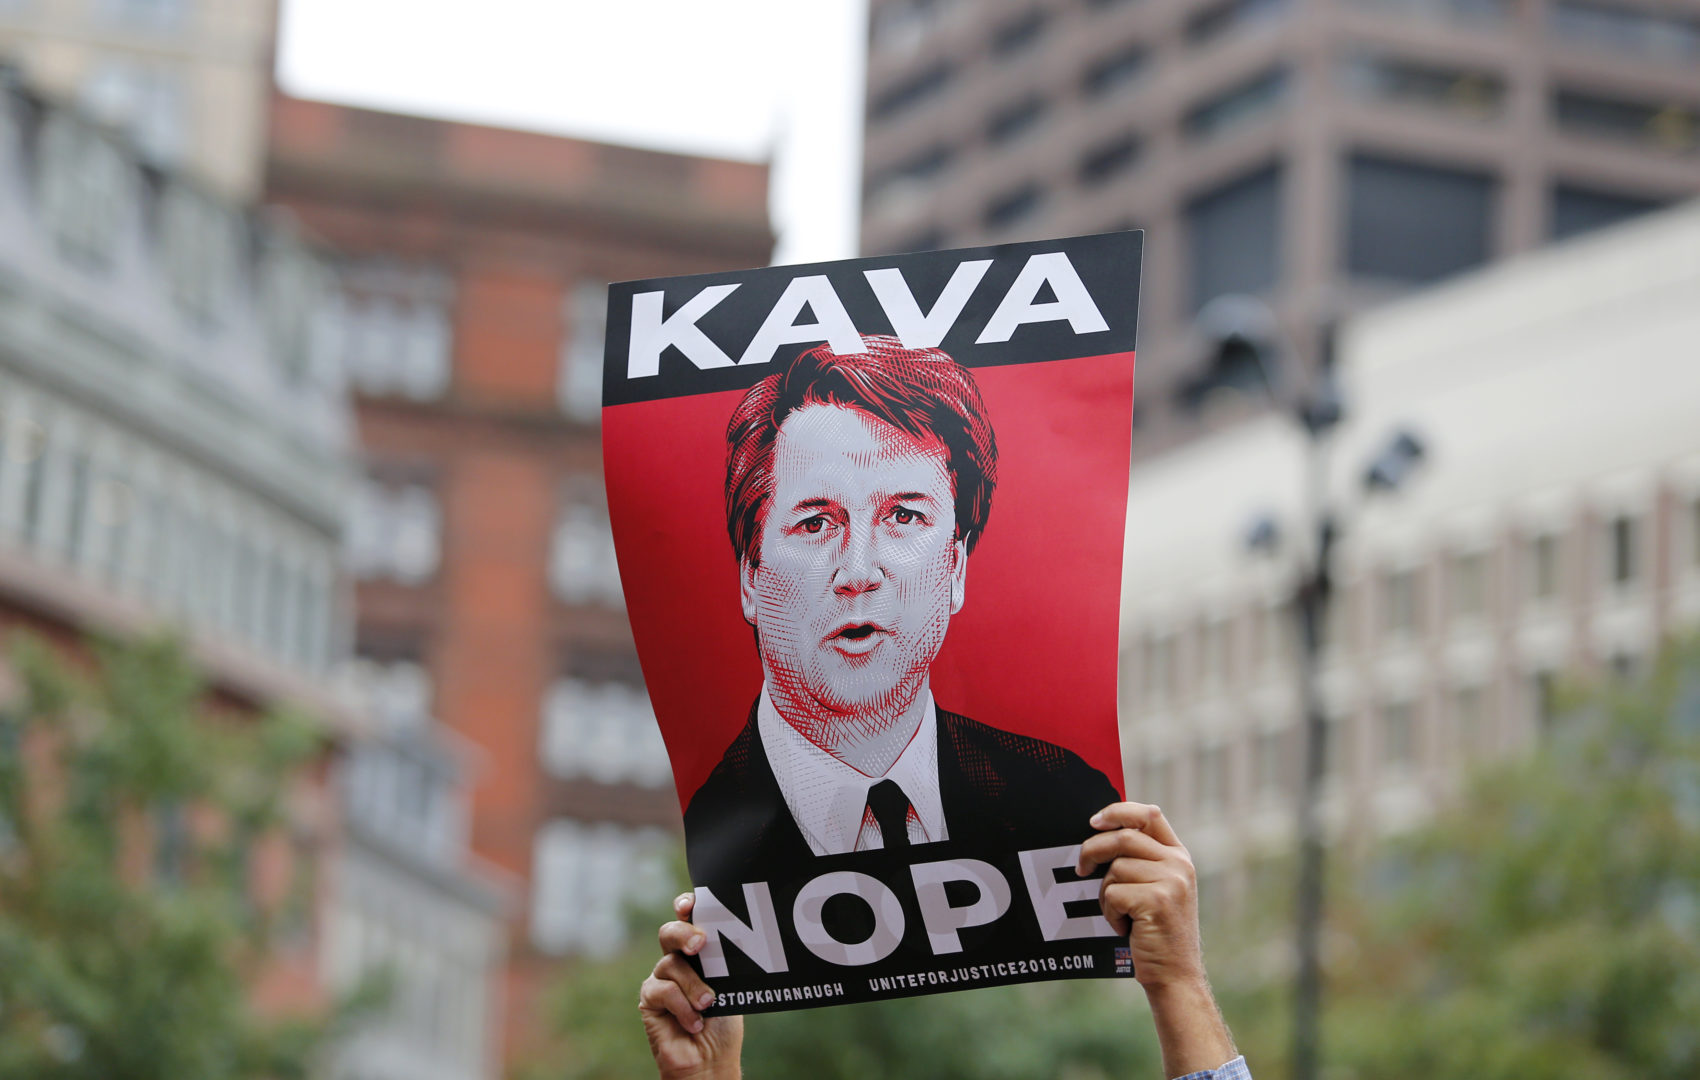 A protester holds a sign in opposition to Judge Brett Kavanaugh at a rally at City Hall ahead of an appearance by Sen. Jeff Flake, R- Ariz. at the Forbes 30 Under 30 Summit, Monday, Oct. 1, 2018, in Boston. (Mary Schwalm/AP)